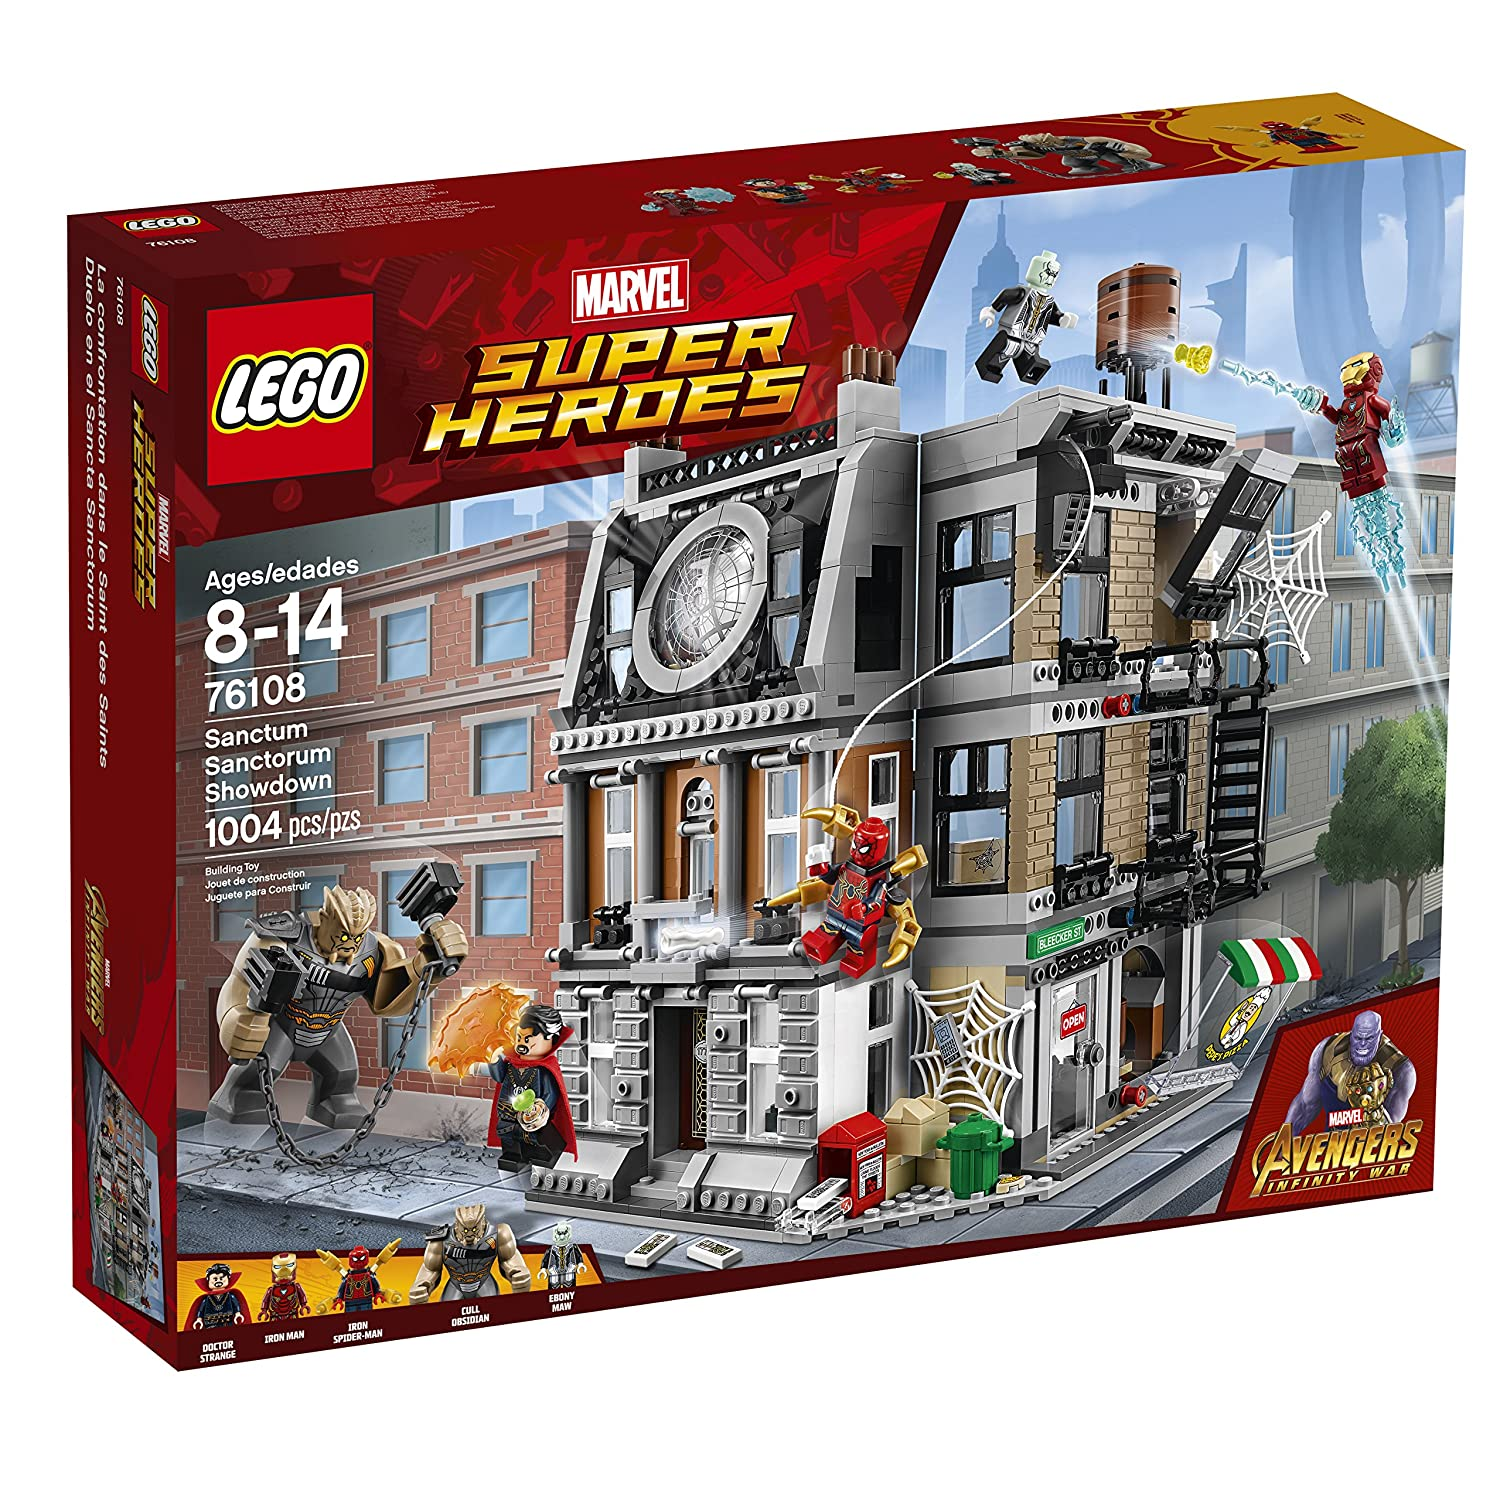 Lego Marvel Super Heroes Avengers Infinity War Sanctum Sanctorum Showdown 76108 Building Kit 1004 Piece